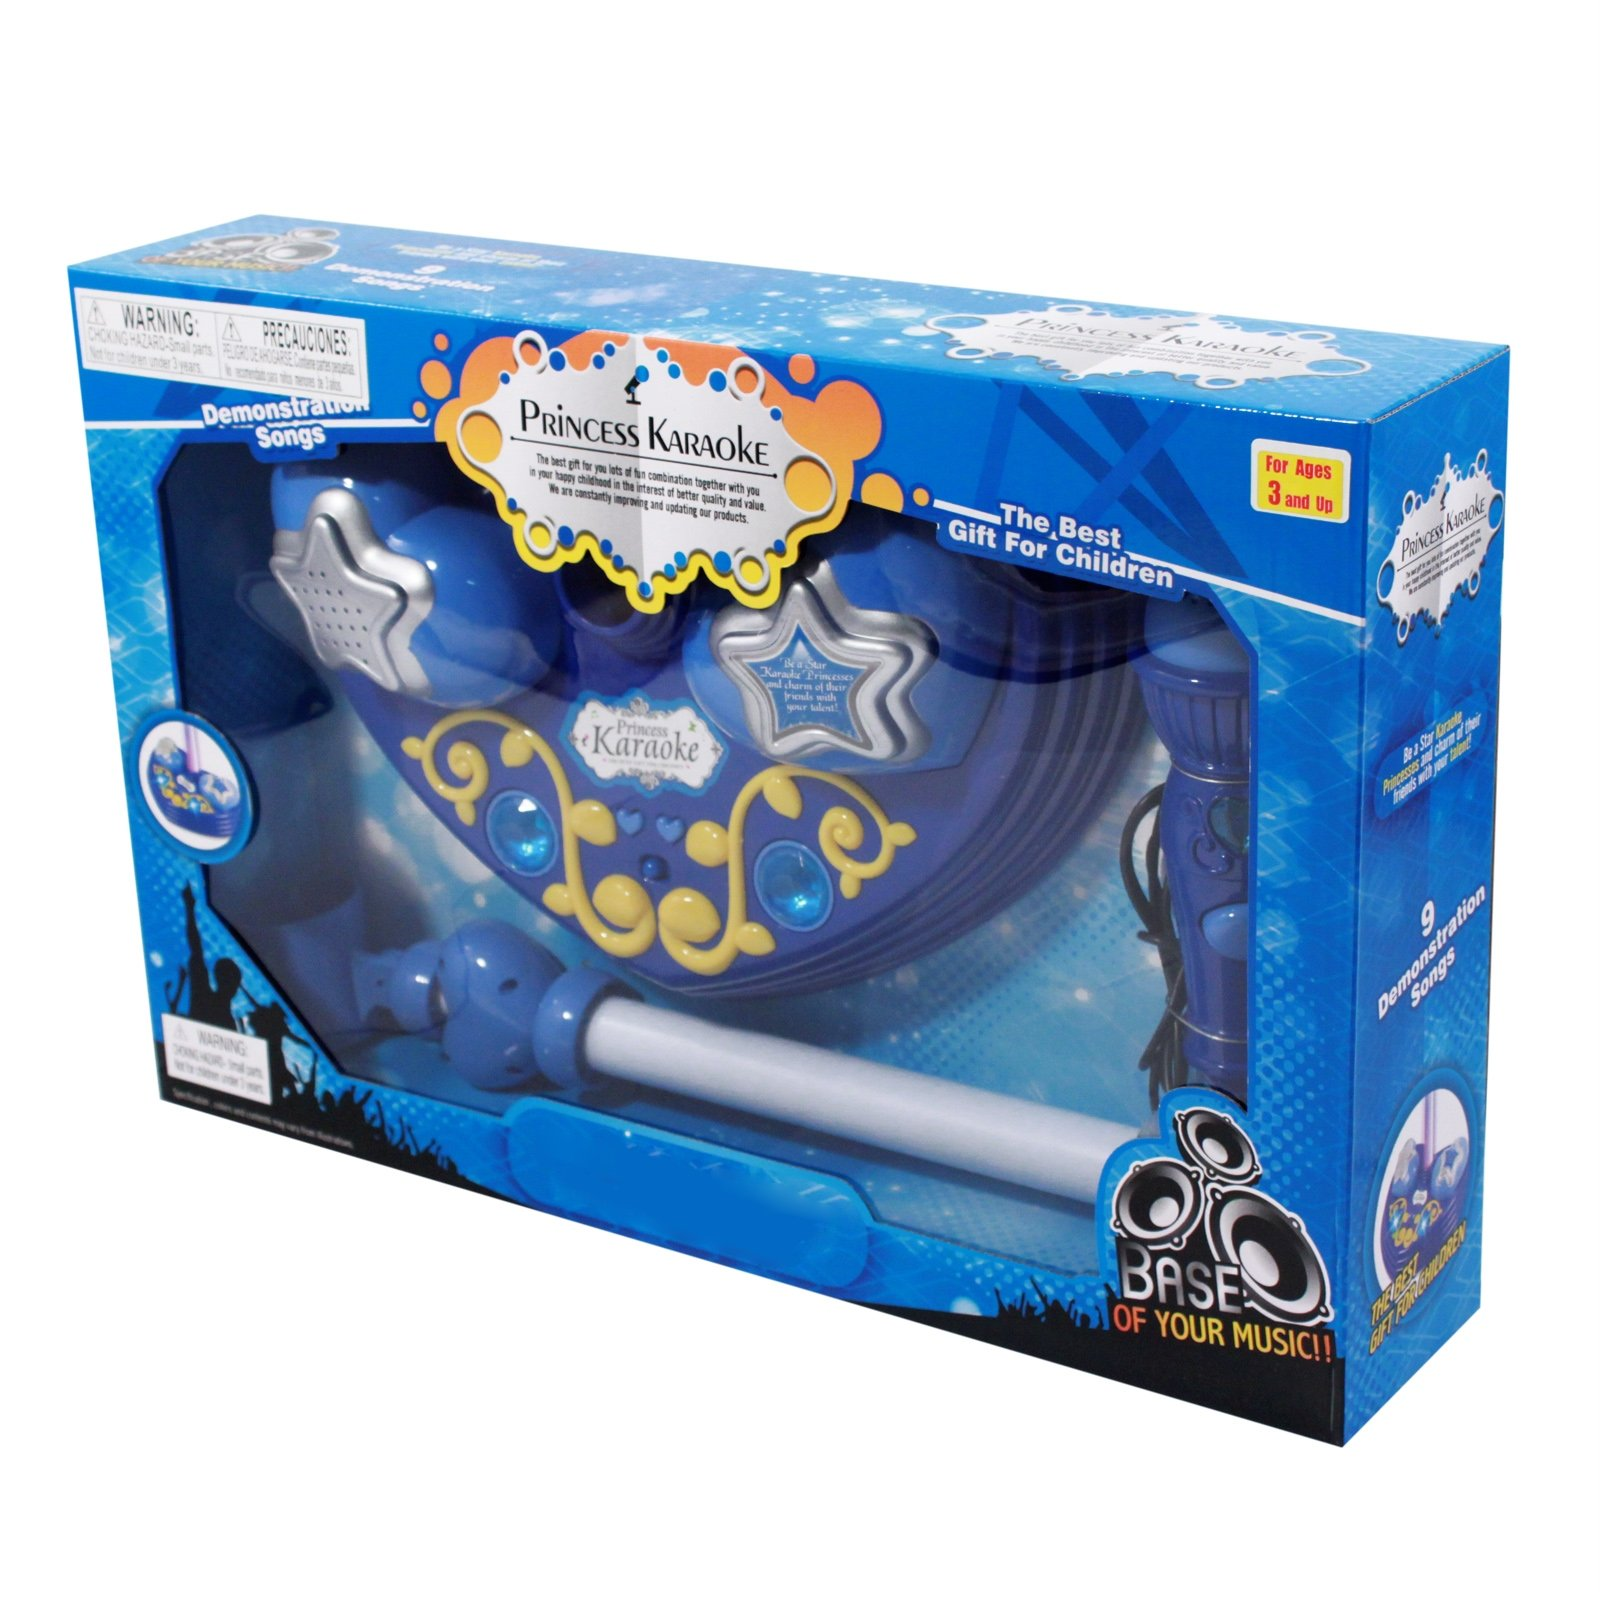 Super Star Kids Android iPhone MP3 Supported Microphone and Karaoke Stand - Blue by Kid Fun (Image #3)